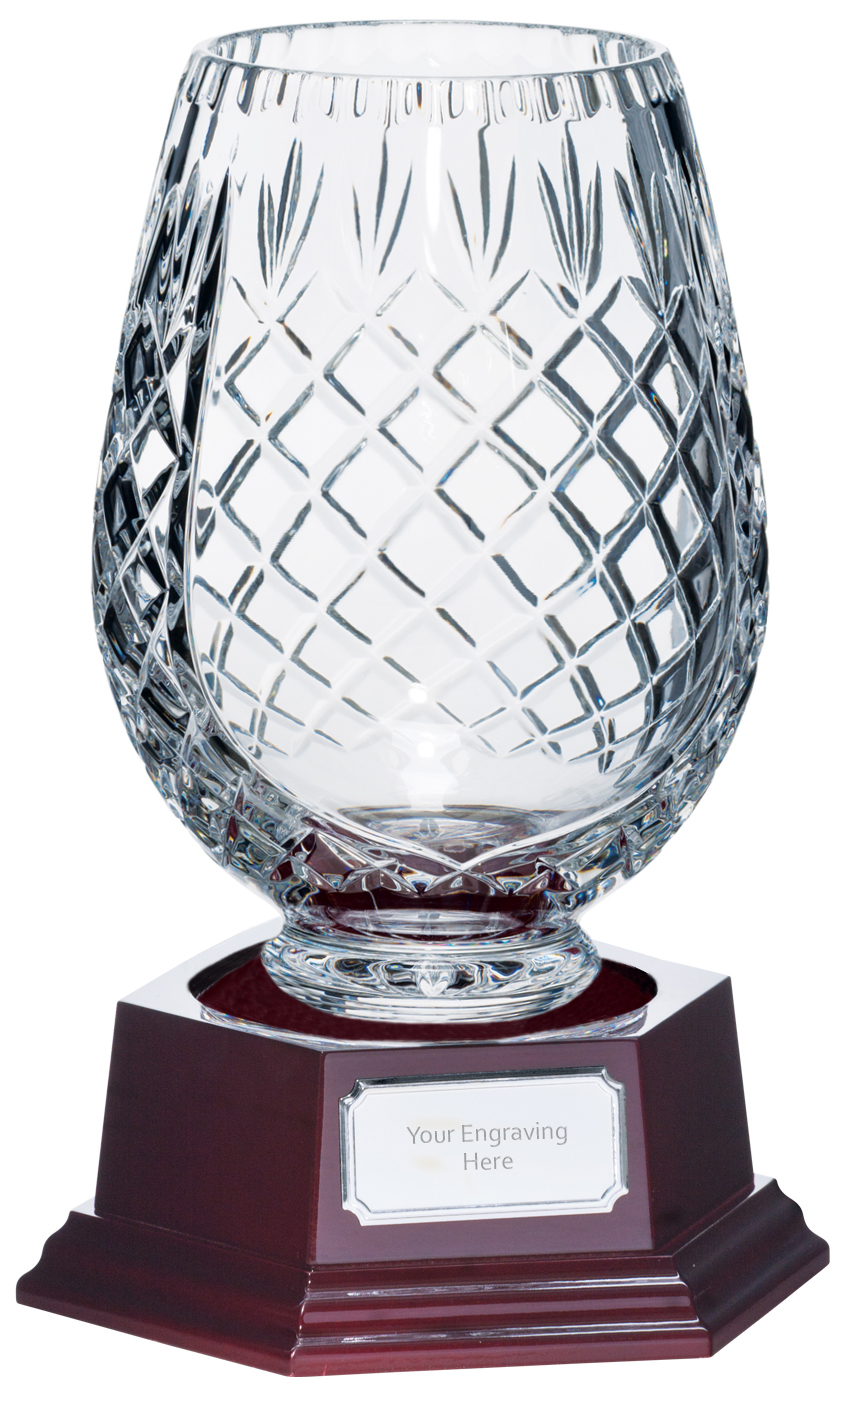 "3/4 Cut Crystal Vase on Piano Finish Base 20.5cm (8"")"